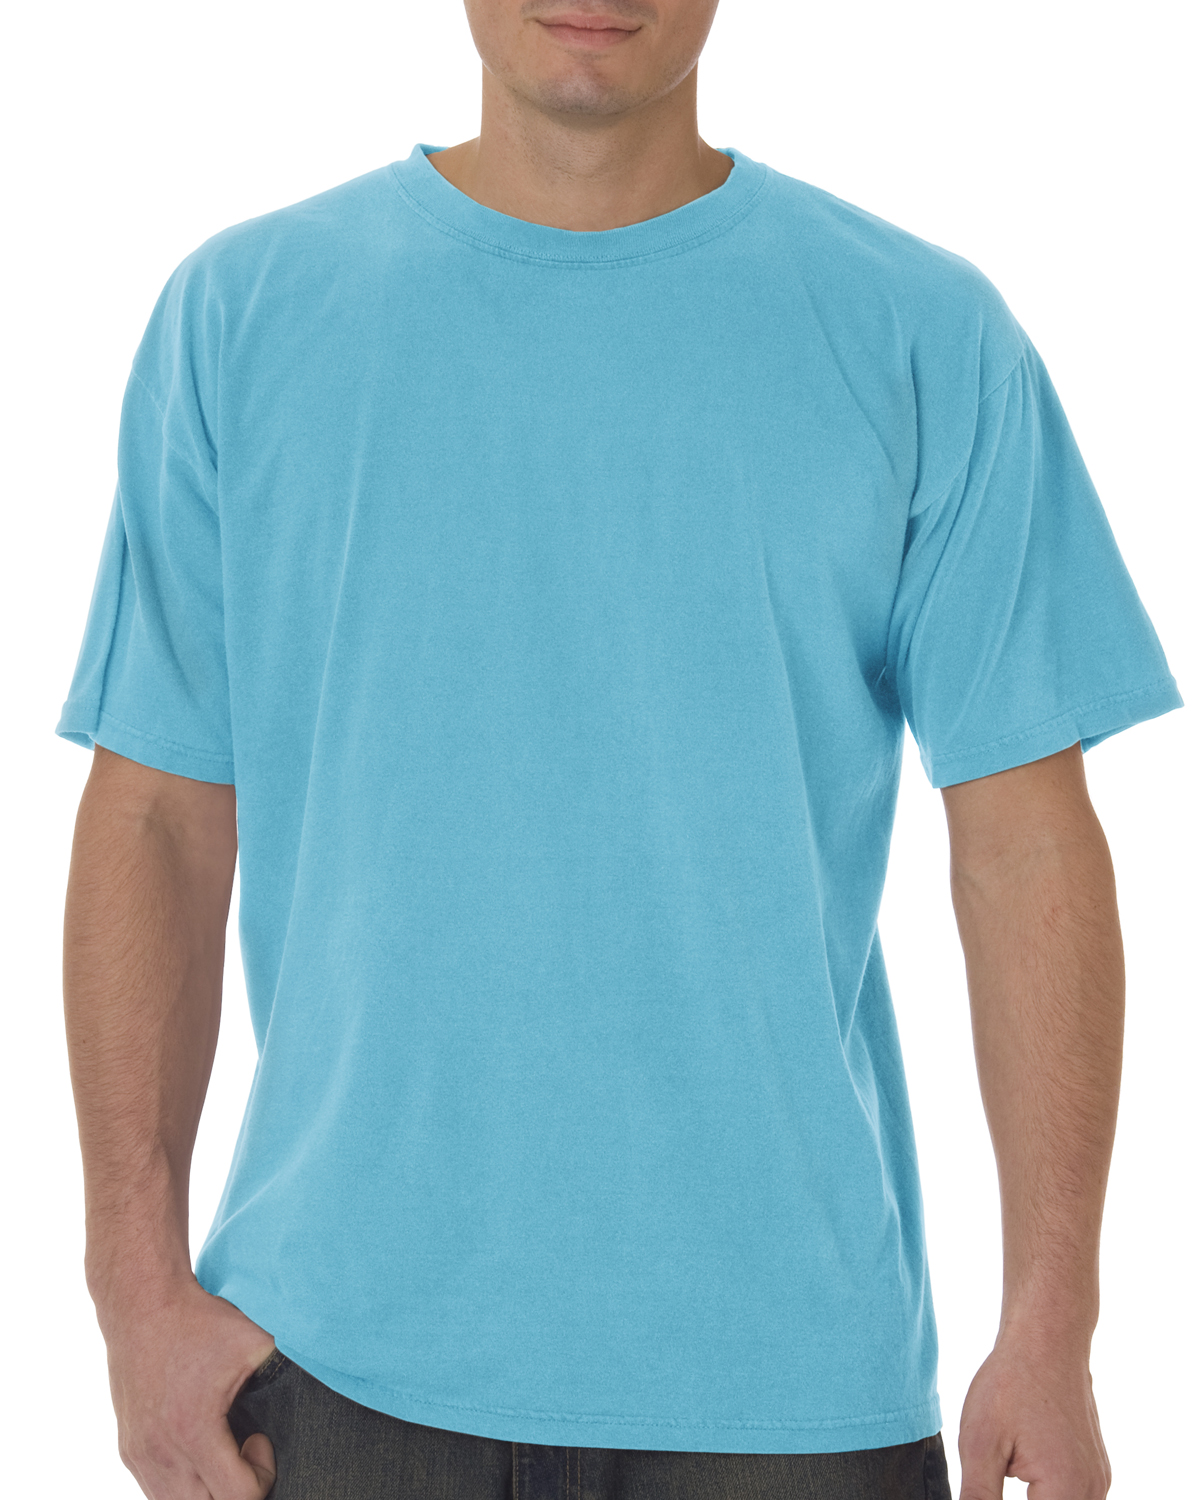 Comfort Colors C5500 - 5.4 oz. Ringspun Garment-Dyed T-Shirt